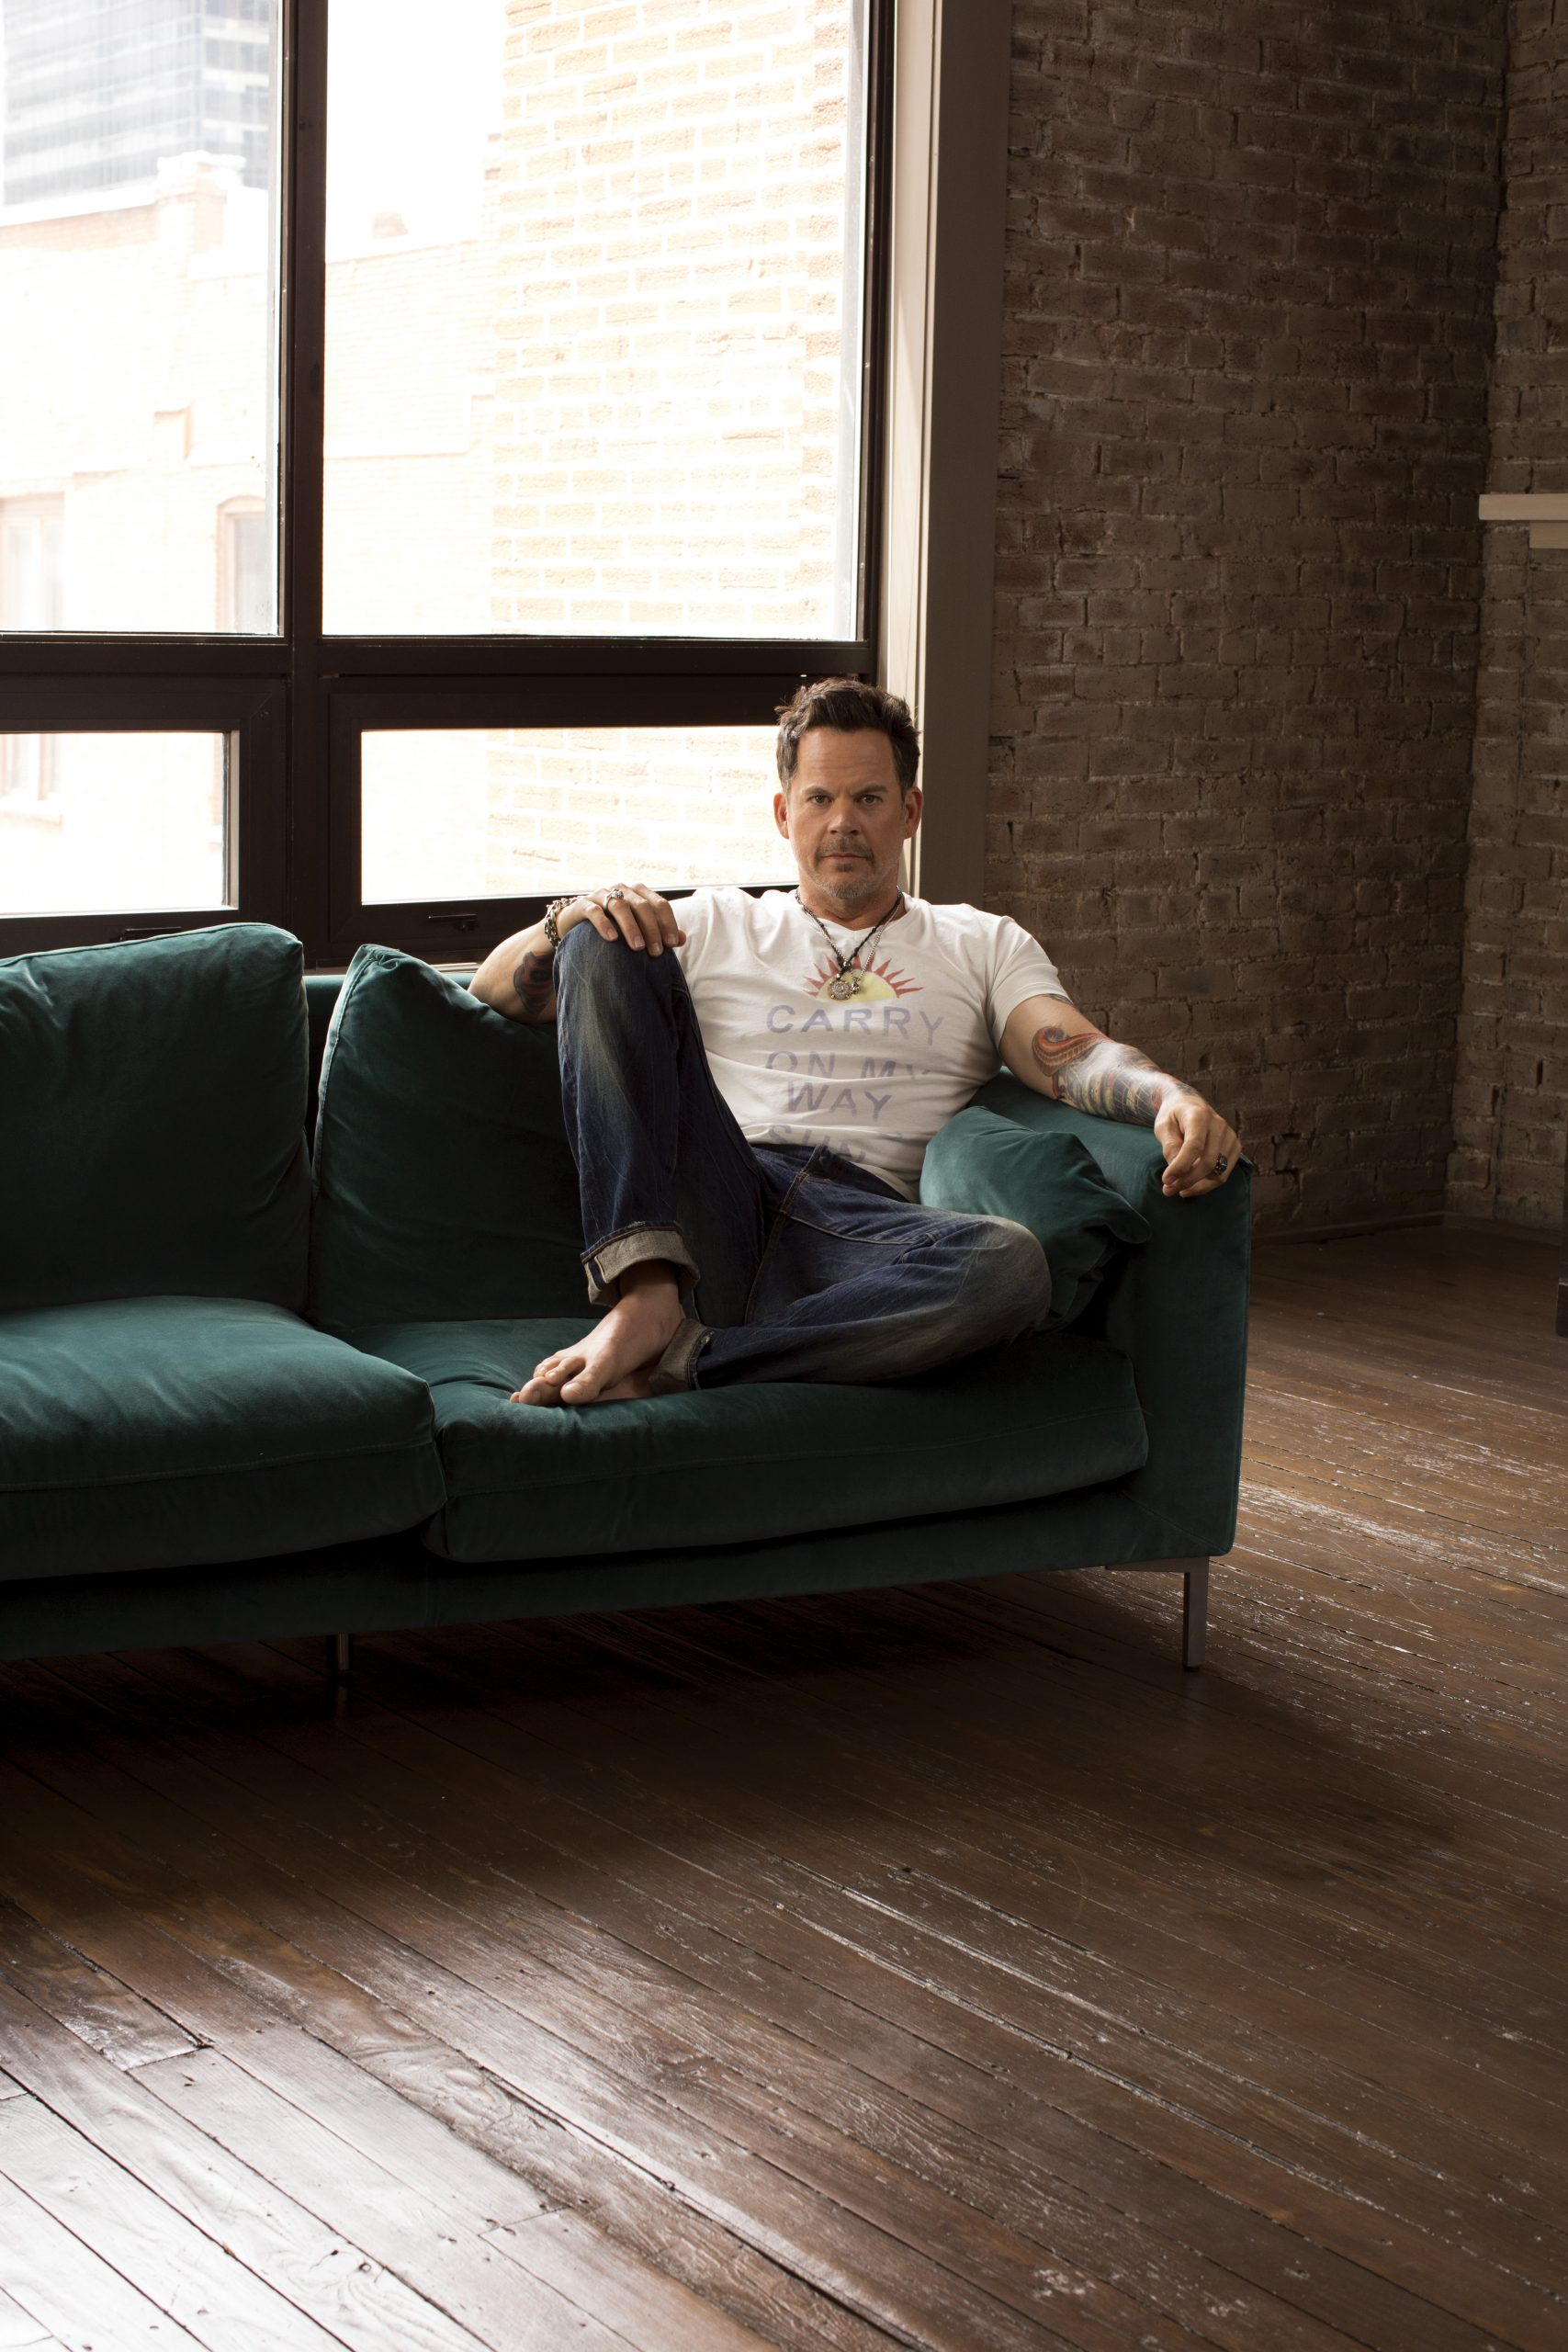 GARY ALLAN TO PERFORM AT THE PEORIA CIVIC CENTER ARENA